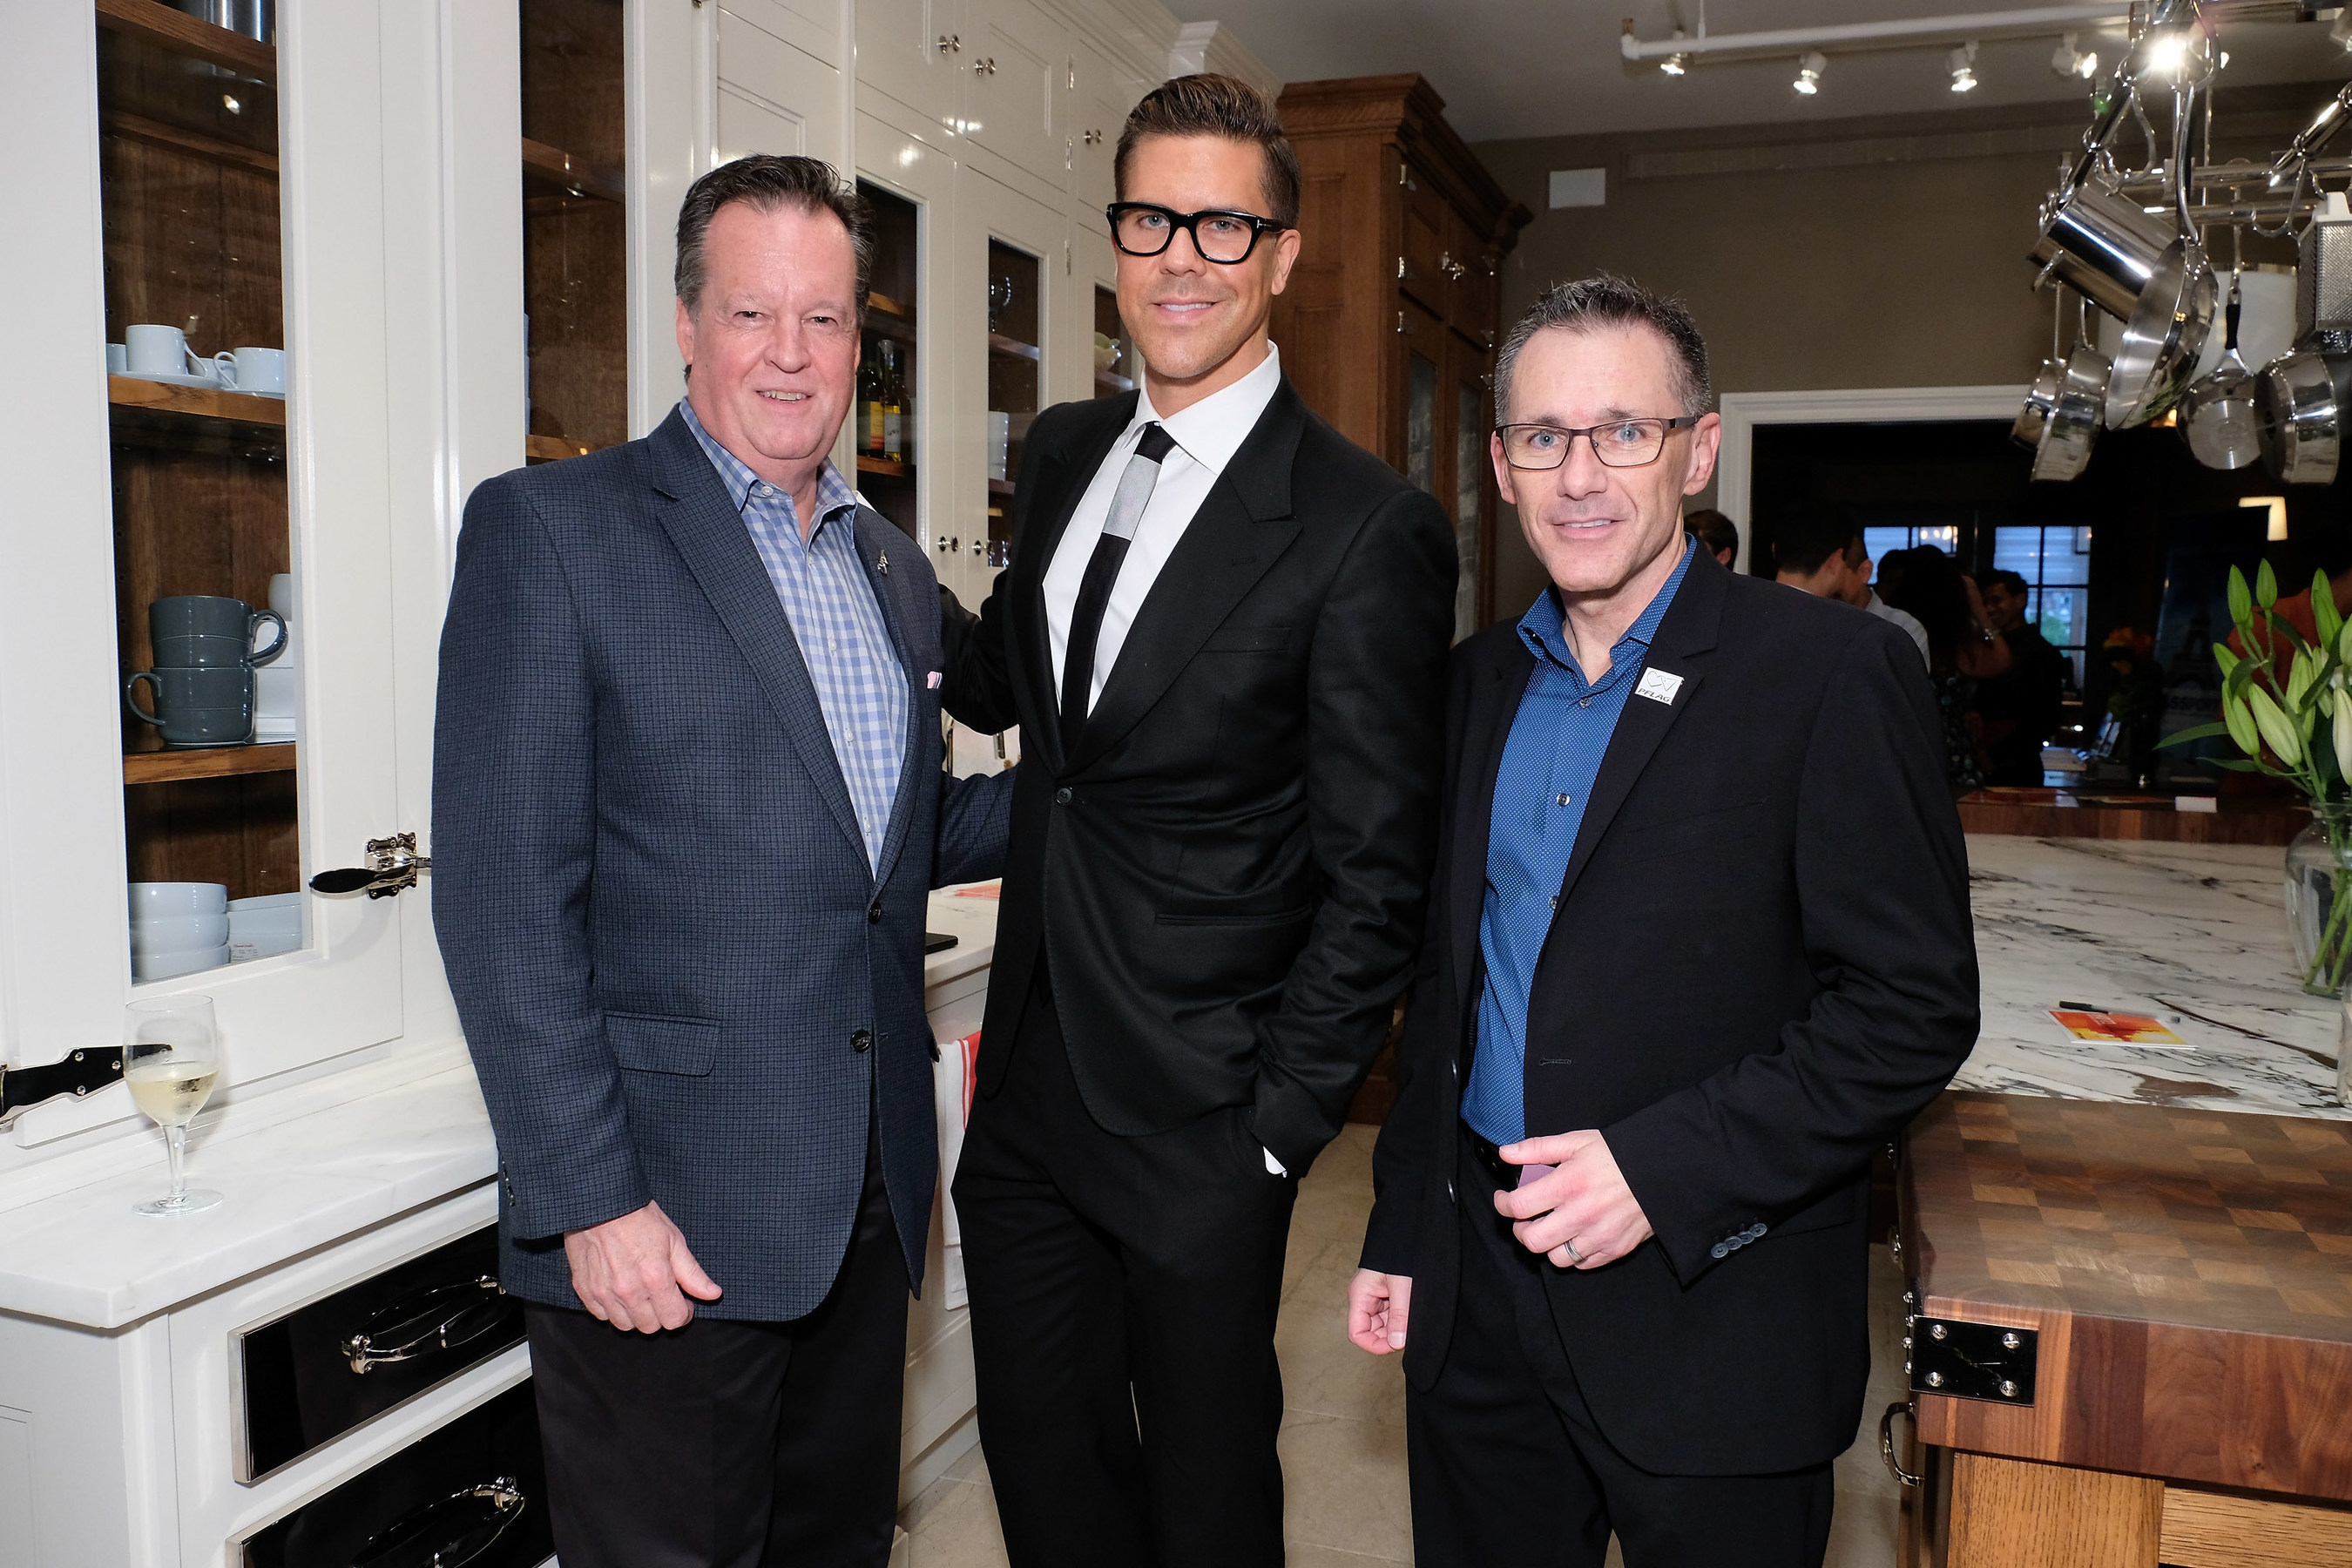 Jenn-Air brand marketing director Brian J. Maynard, Fredrik Eklund, and PFLAG National executive director Jody M. Huckaby attend the PFLAG HOT! event at the Jenn-Air Showroom on September 21, 2016 in New York City.D. Dipasupil/Getty Images for PFLAG National